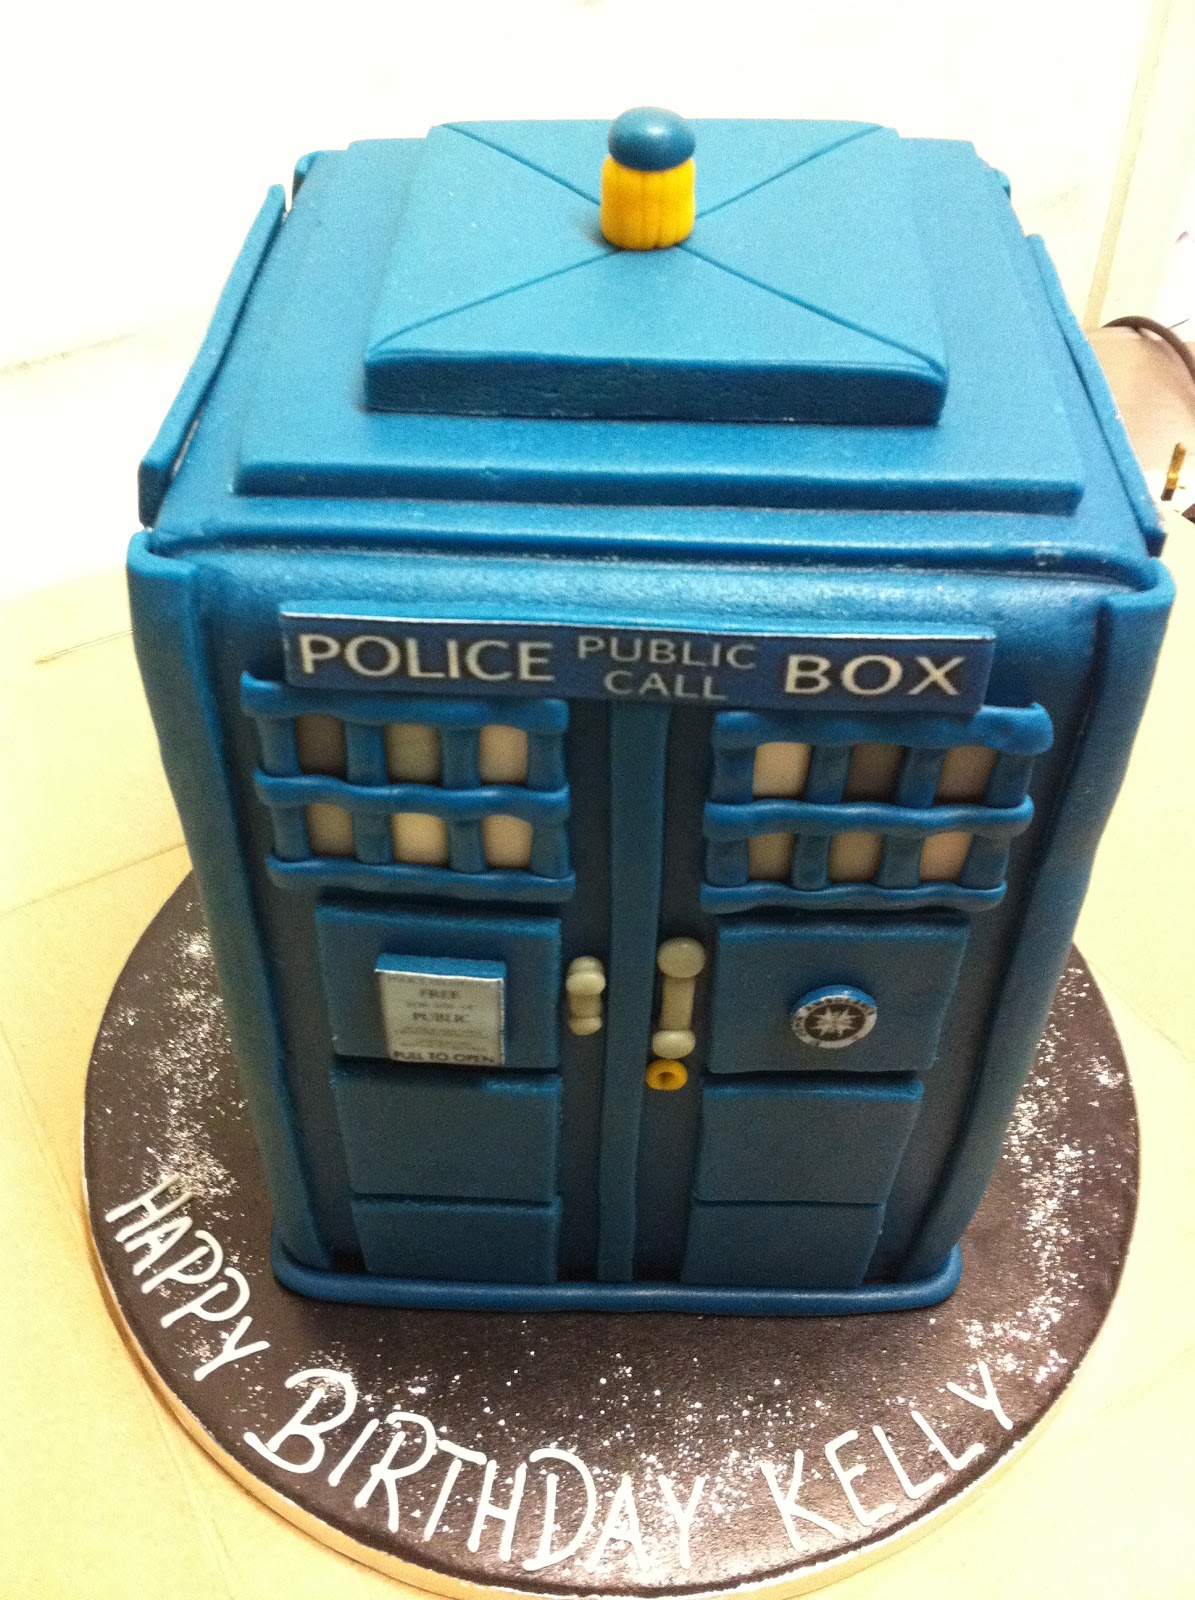 The Family Cake Company Blog: Have you got a Sonic Screwdriver